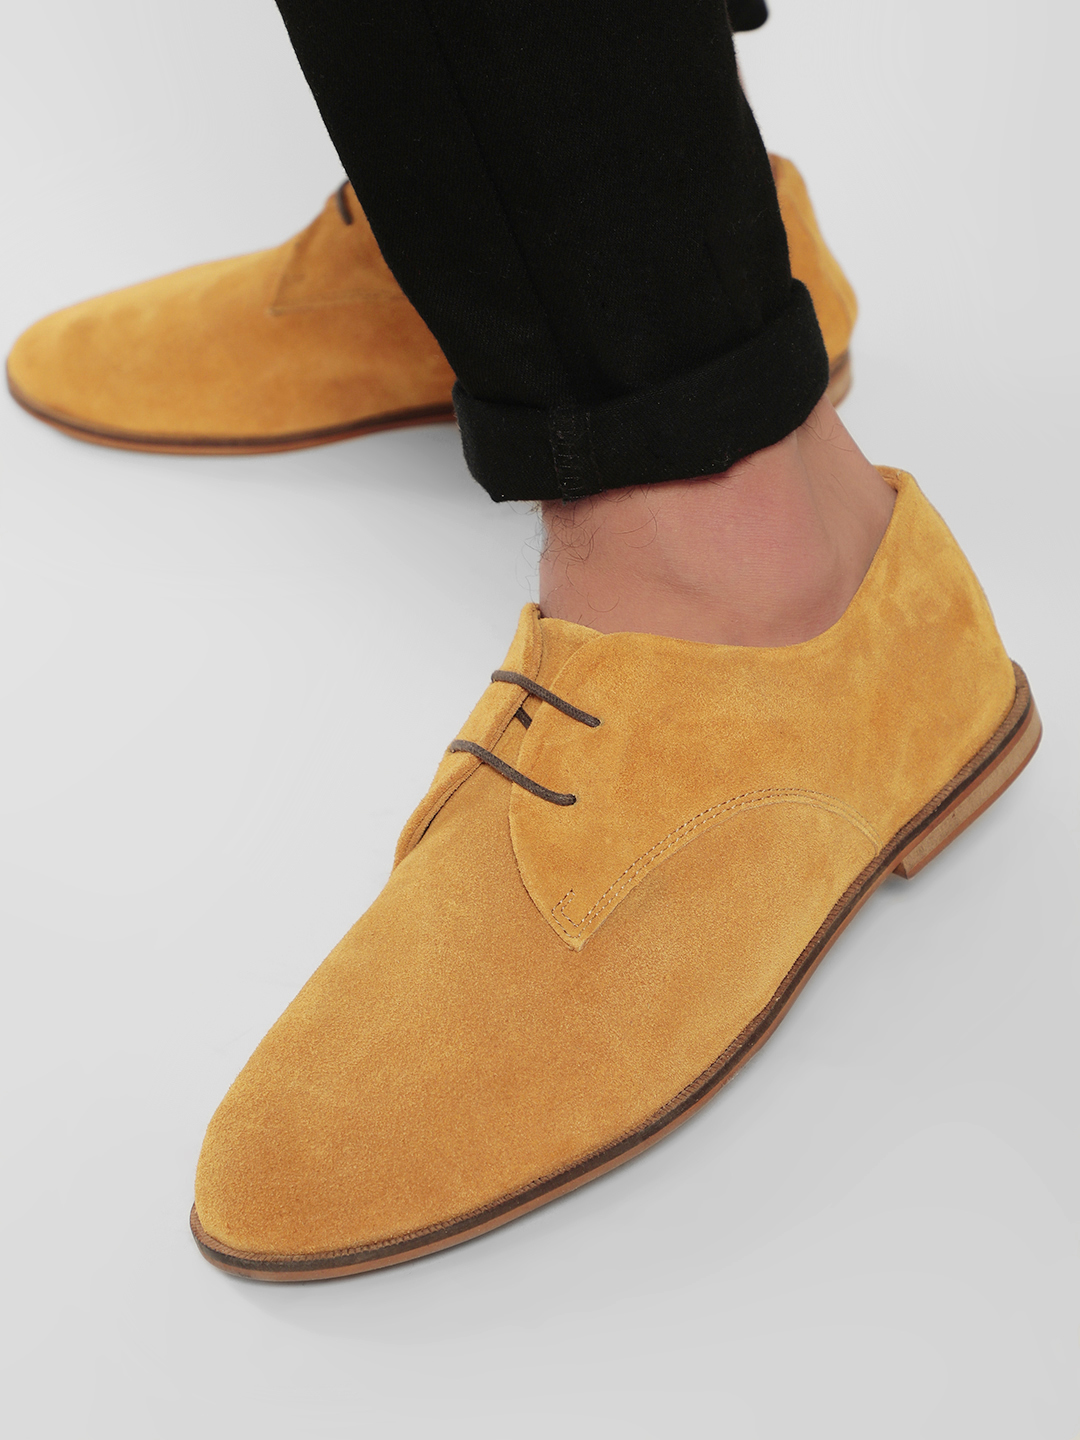 Marcello & Ferri Brown Suede Leather Derby Shoes 1